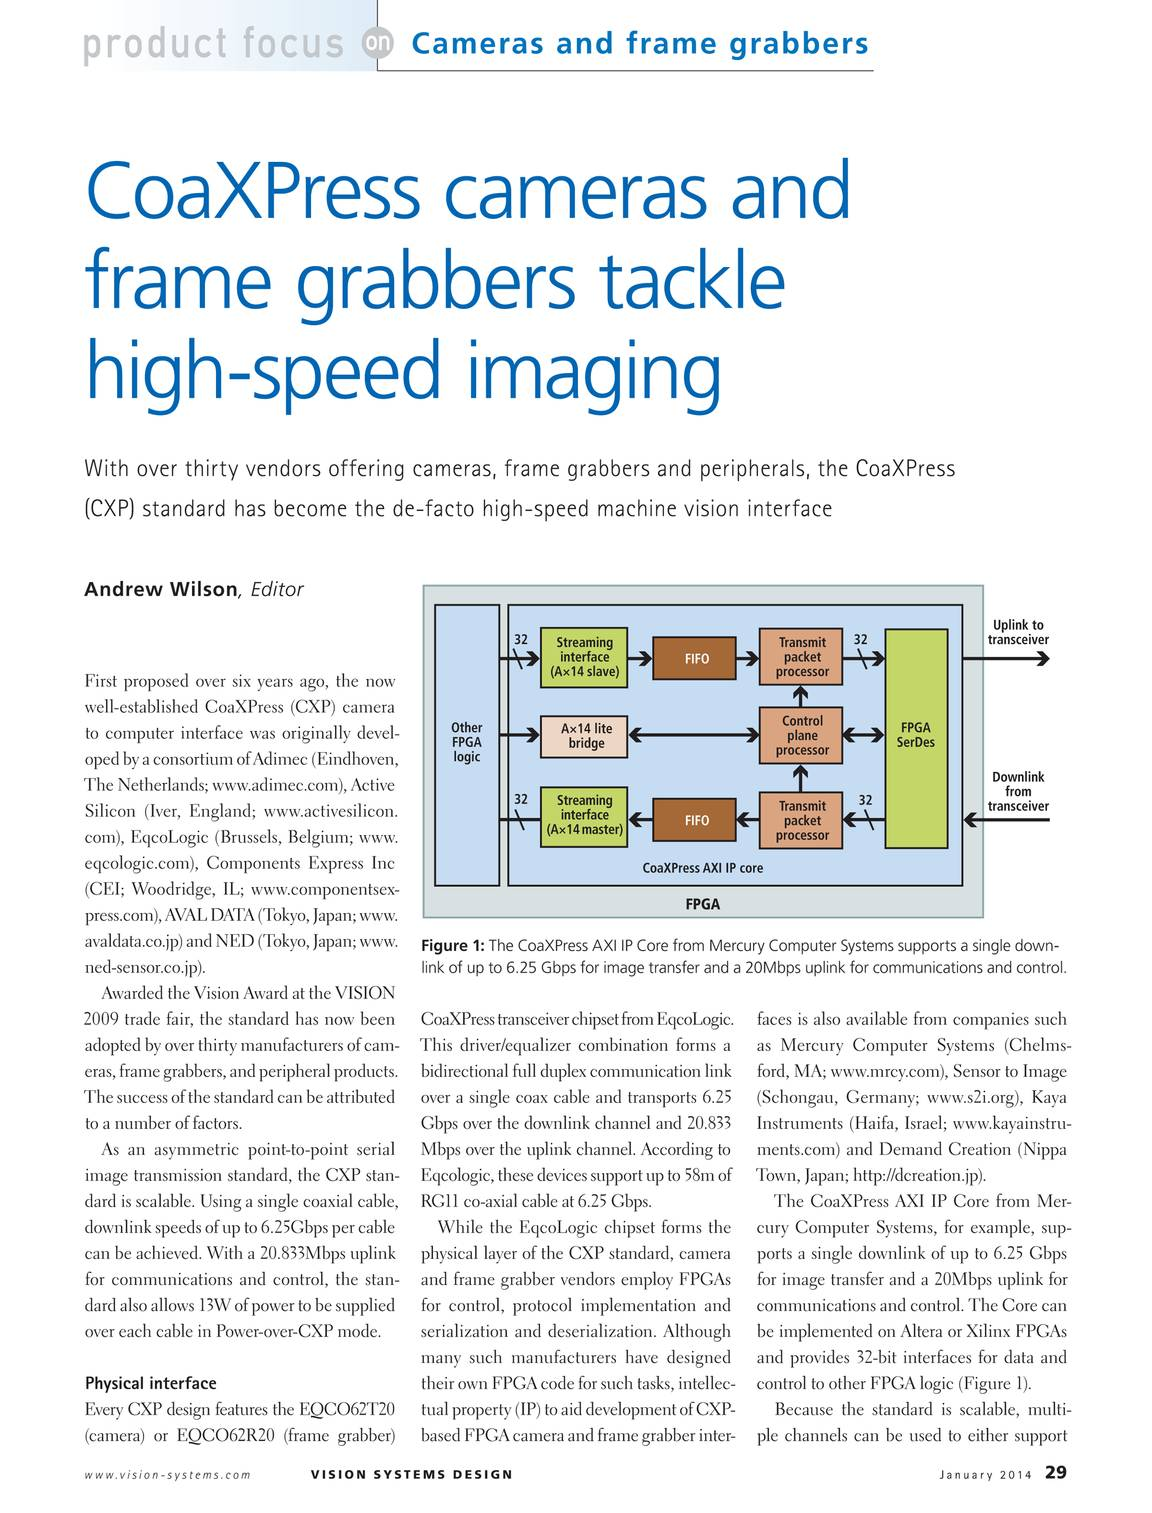 Vision Systems - January 2014 - page 29